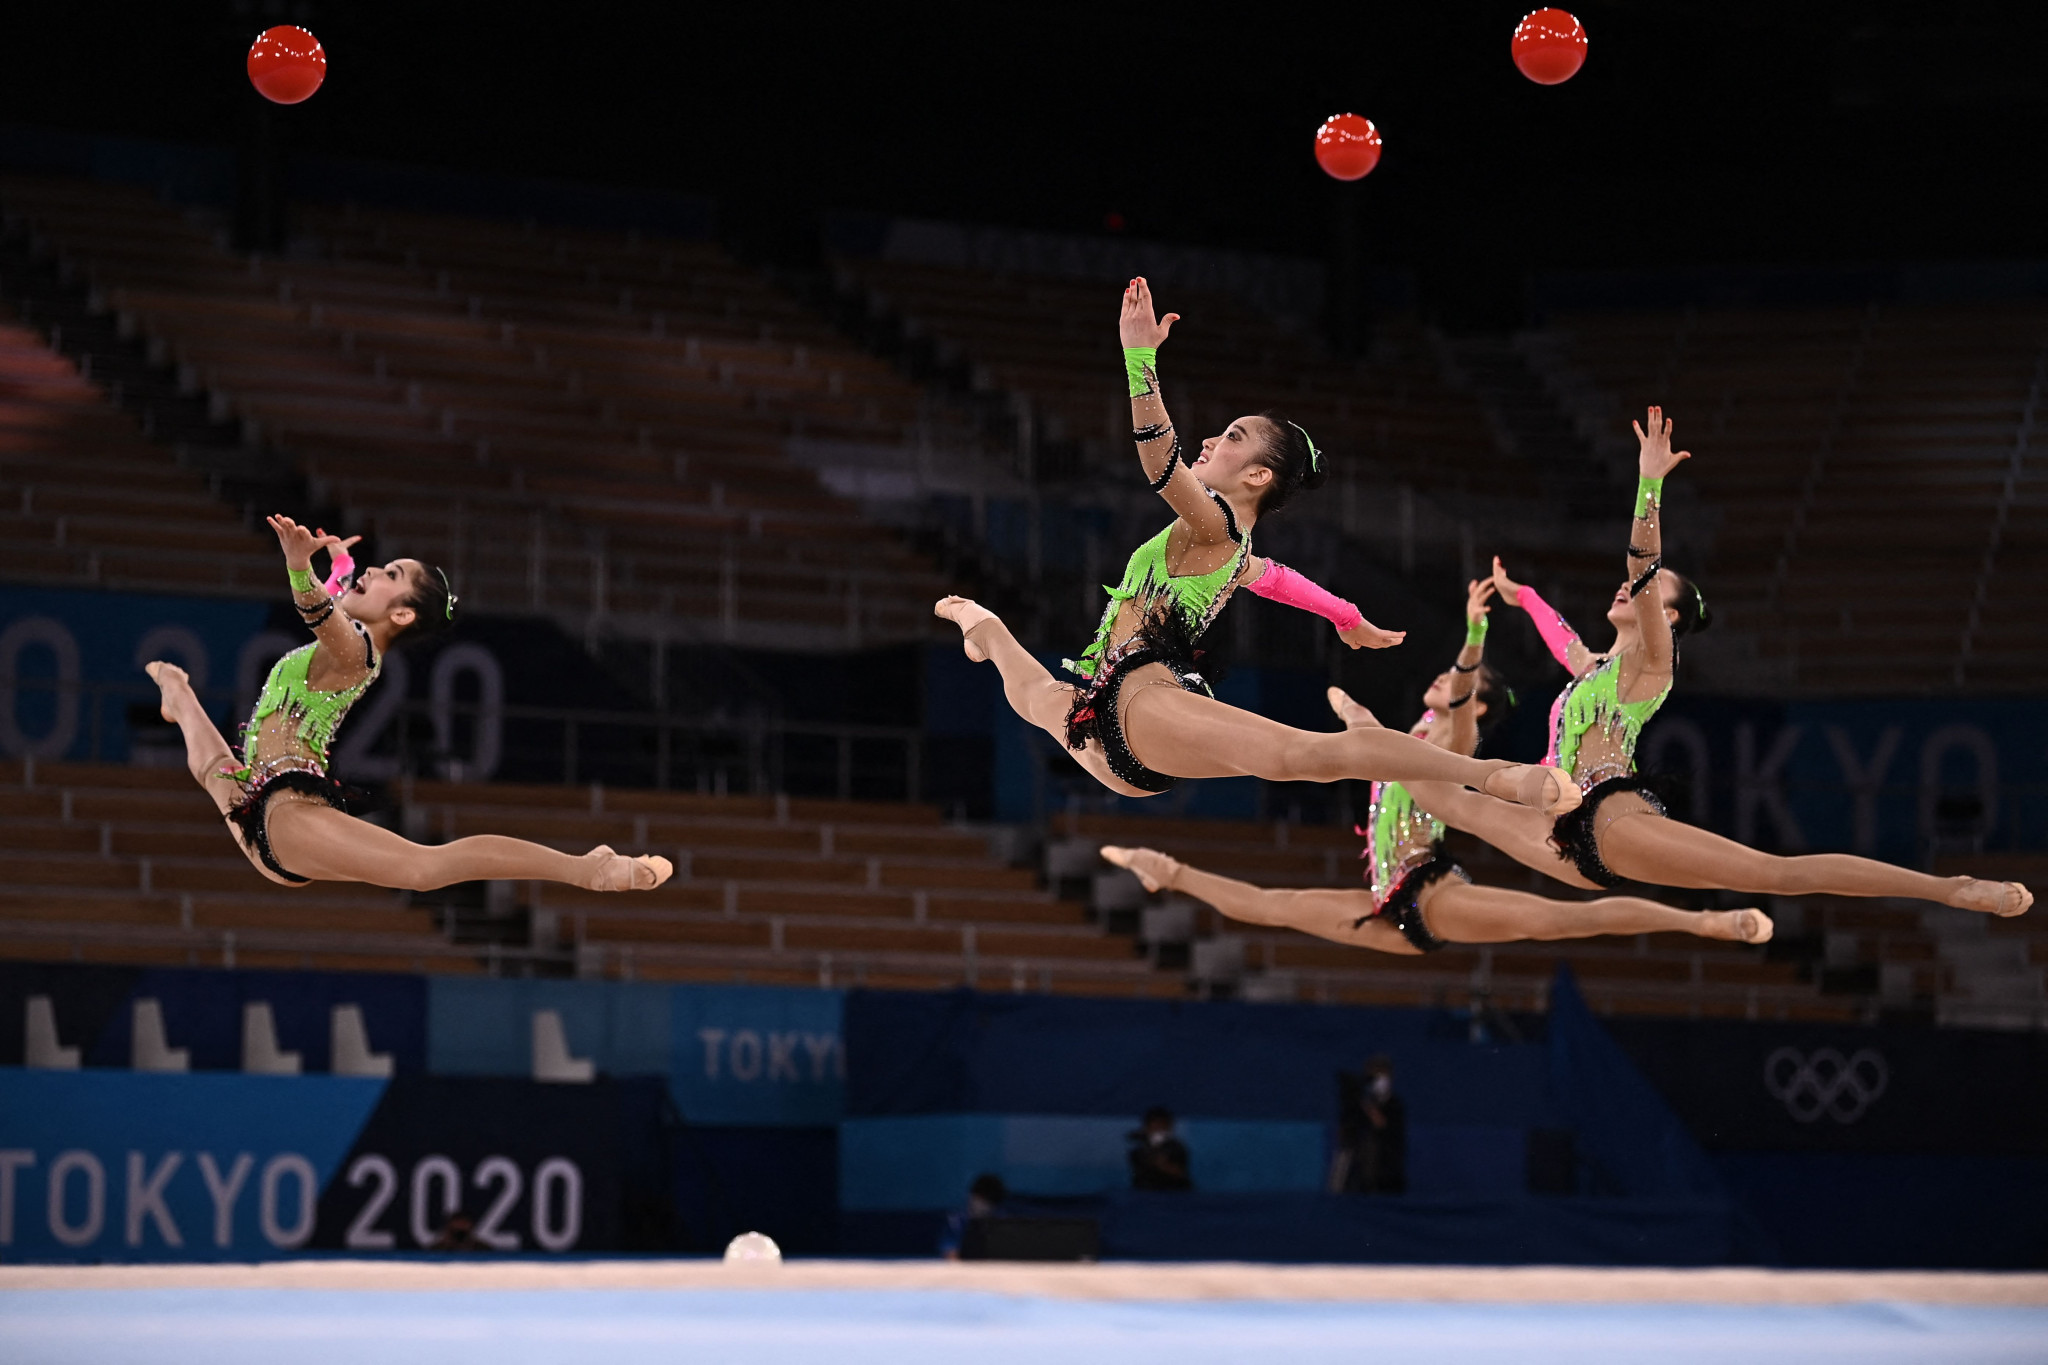 Spectators were unable to attend gymnastics competition at the Tokyo 2020 Olympic Games ©Getty Images